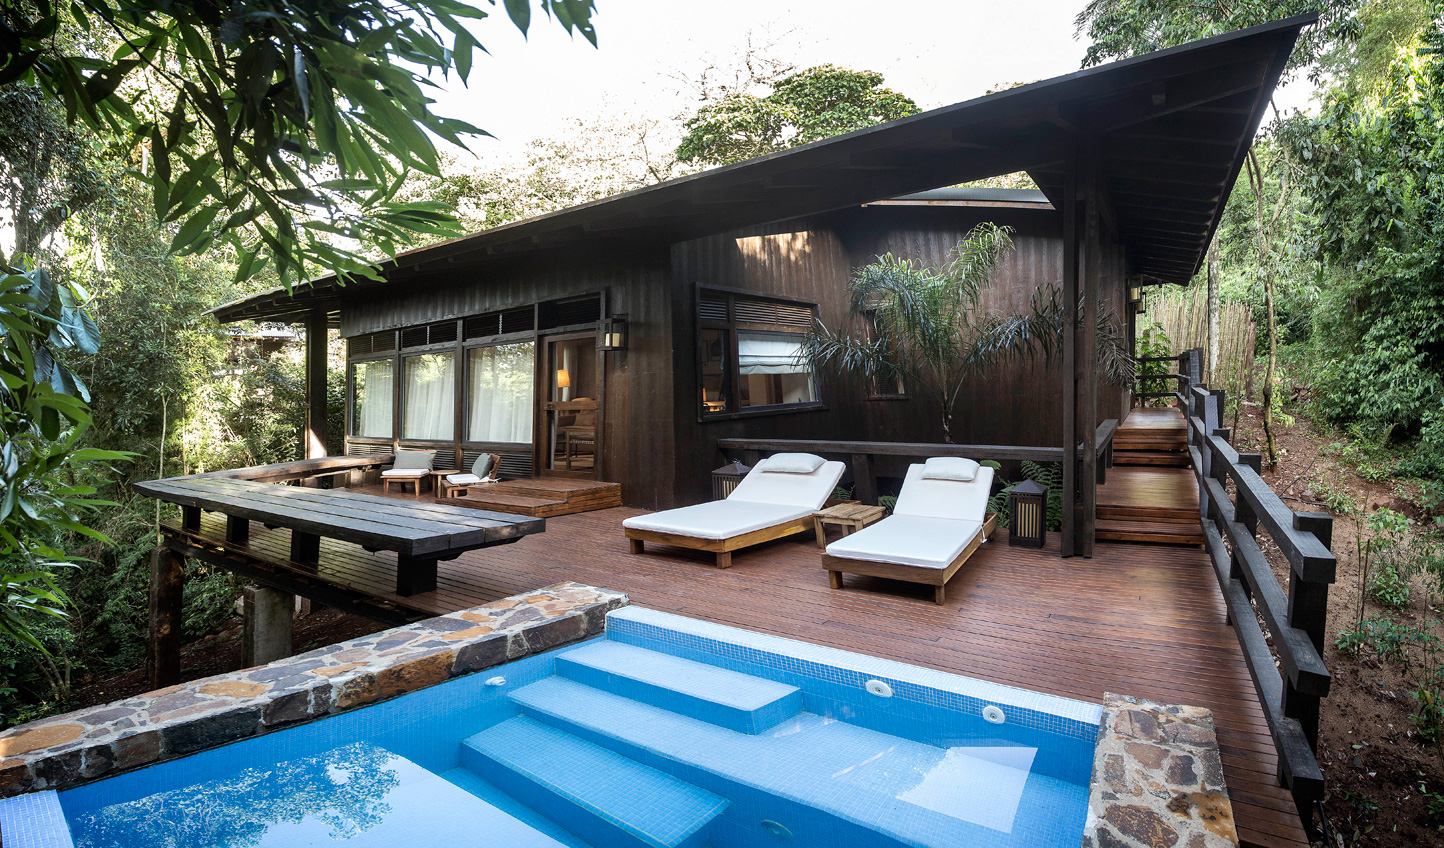 Relax in your private plunge pool and listen to bird song